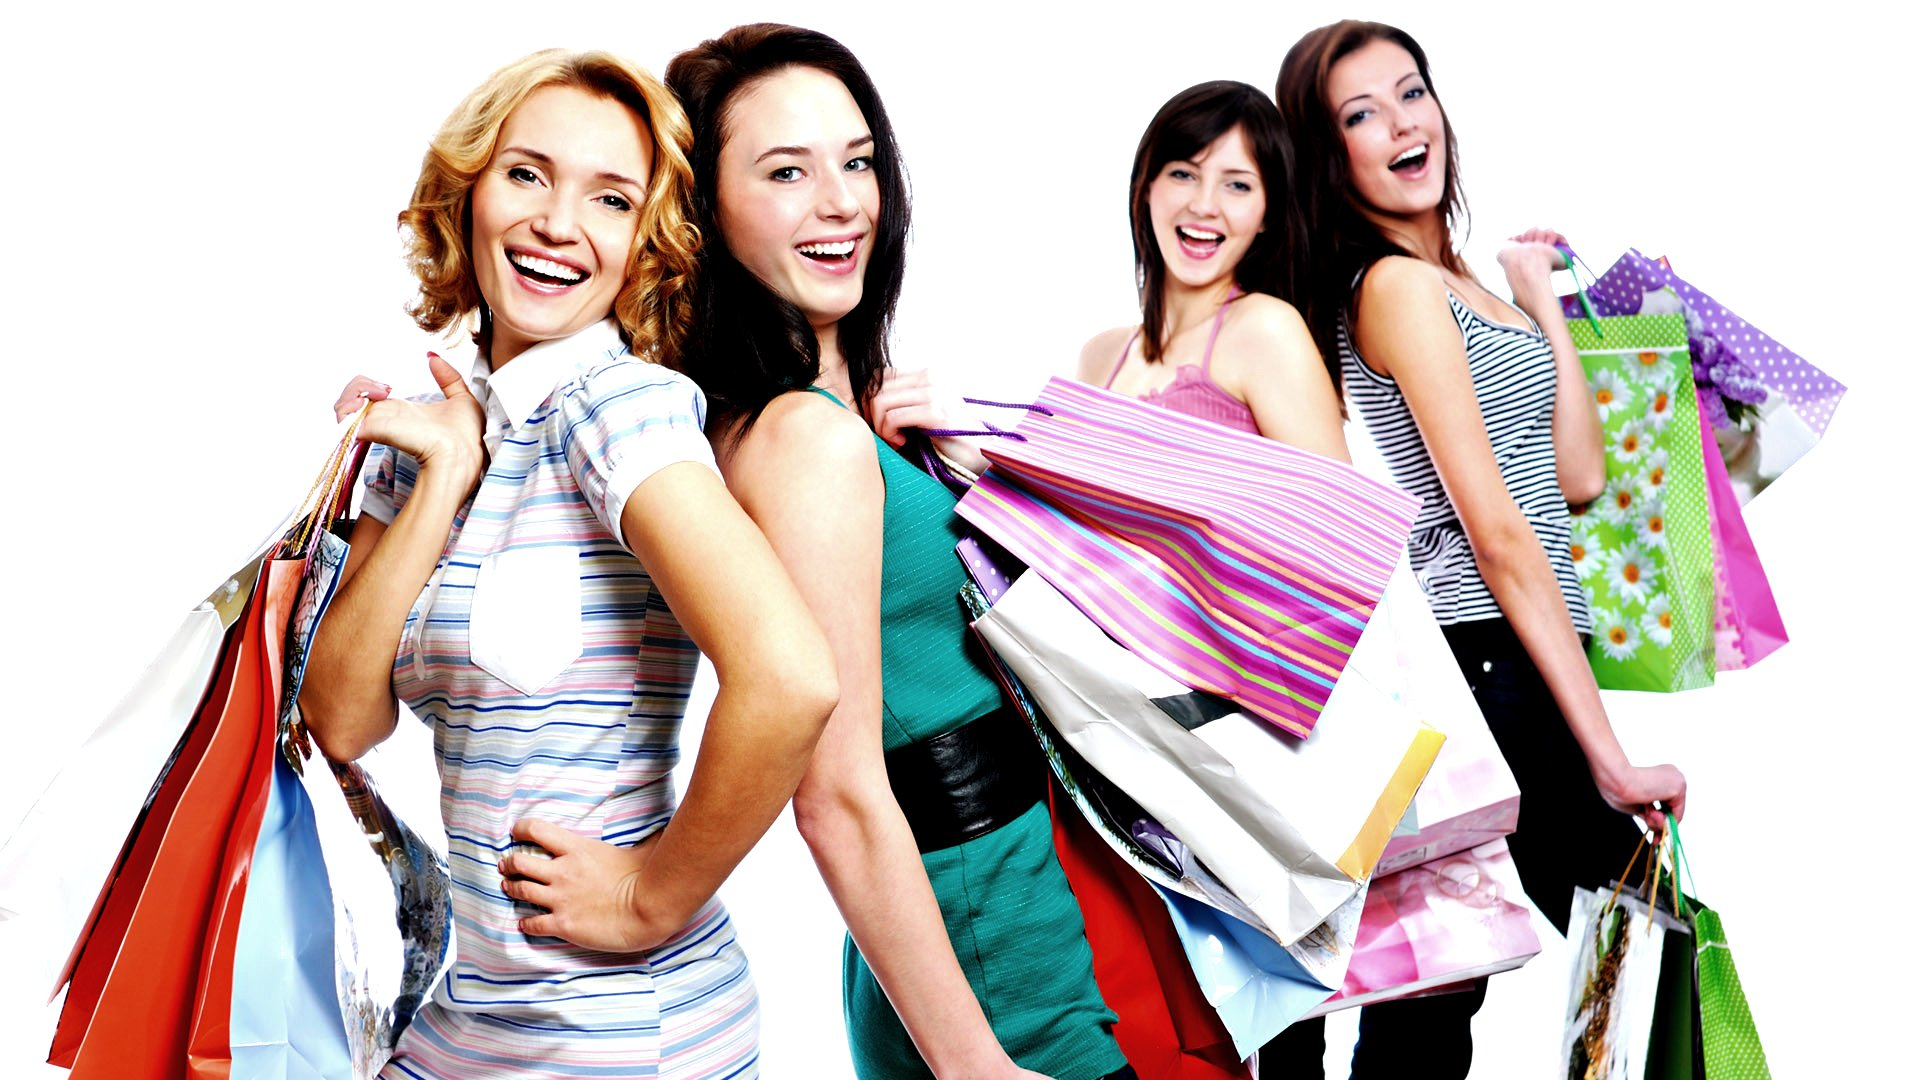 girls-only-fun-shopping-tips-confidence-happiness_1920x1080_81-hd - Girls Shopping PNG HD